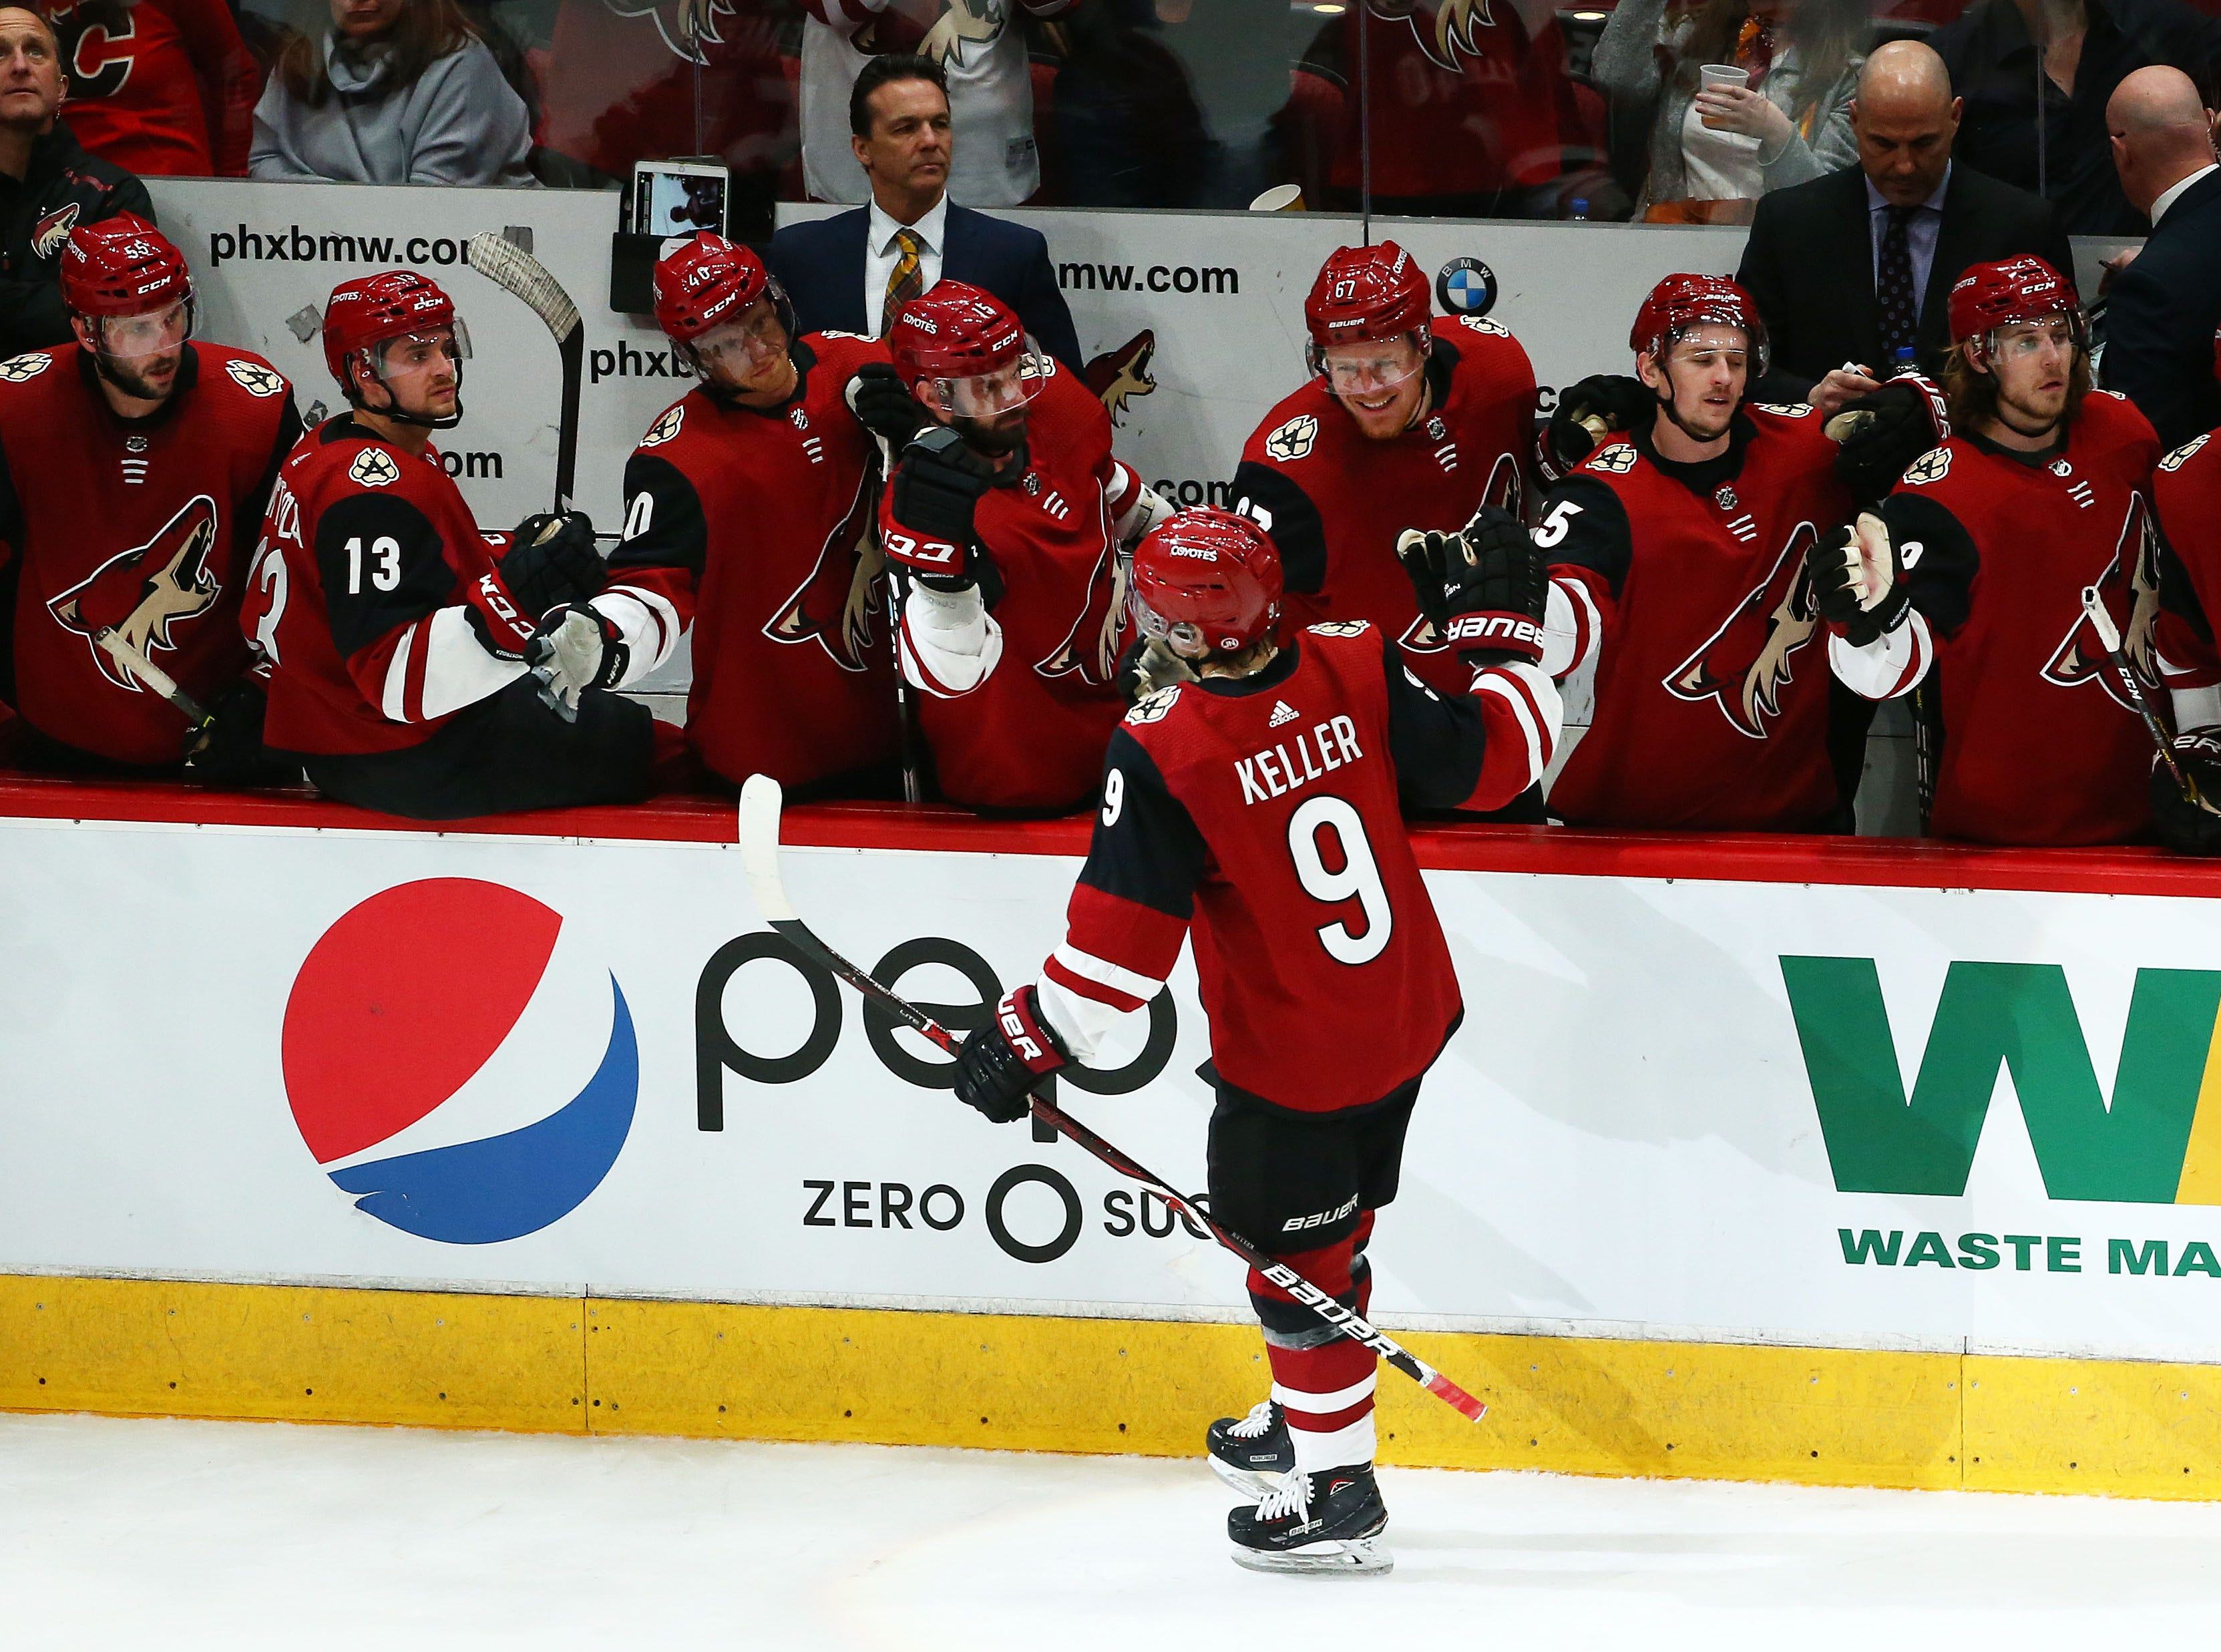 Arizona Coyotes center Clayton Keller (9) celebrates his goal against the Calgary Flames in the first period on Mar. 7, 2019, at Gila River Arena in Glendale, Ariz.